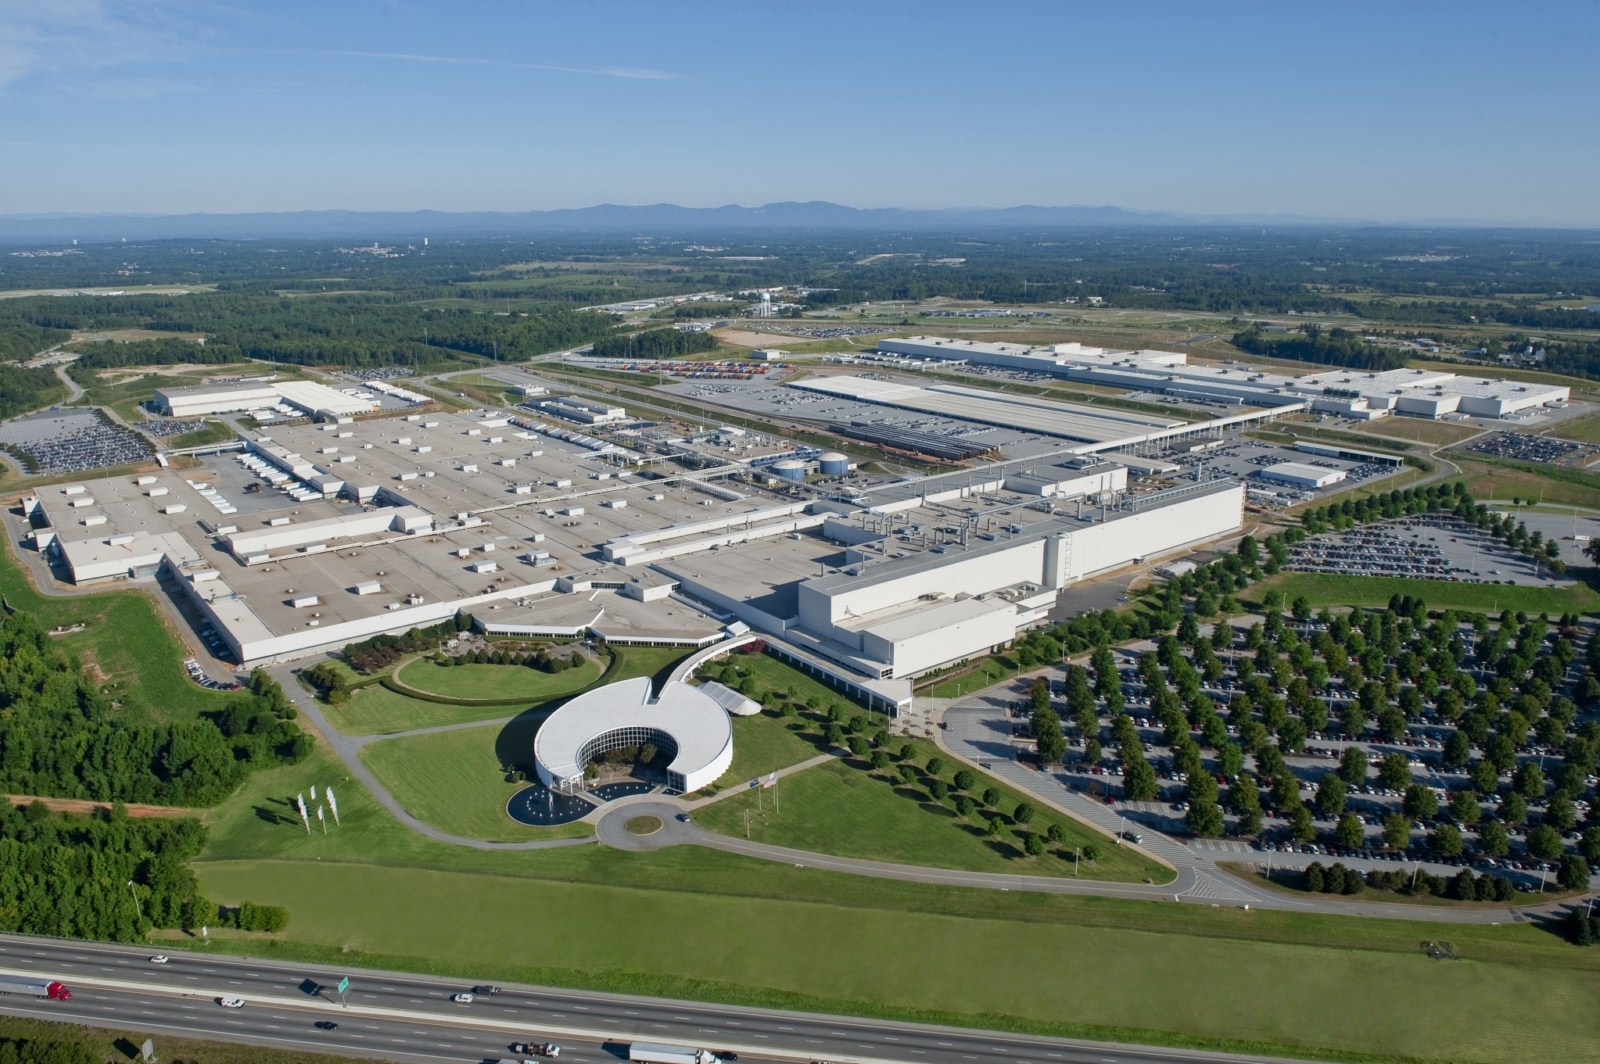 Bmw Pre Owned >> BMW's South Carolina Plant Changes Leadership - autoevolution